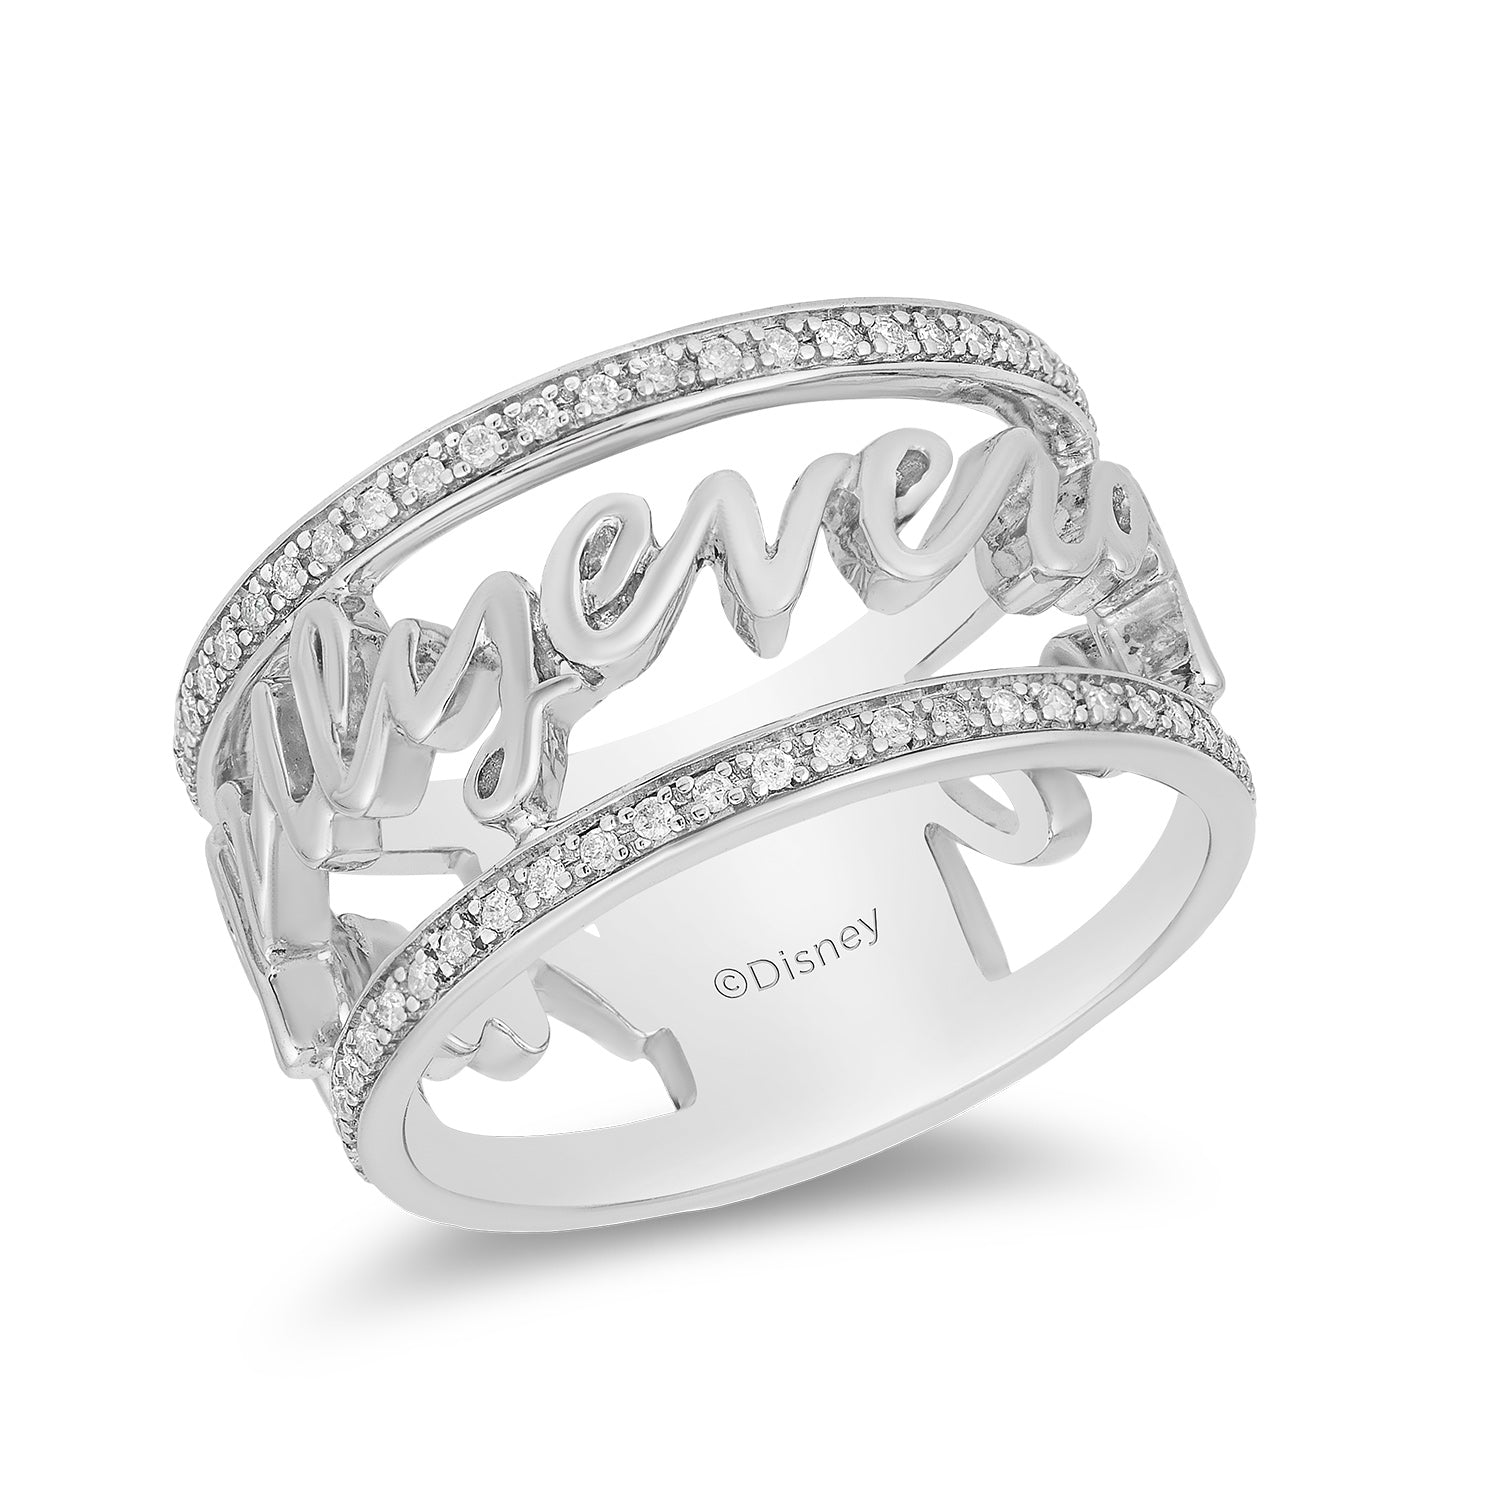 enchanted_disney-majestic-princess_ring-sterling_silver_1/5CTTW_1